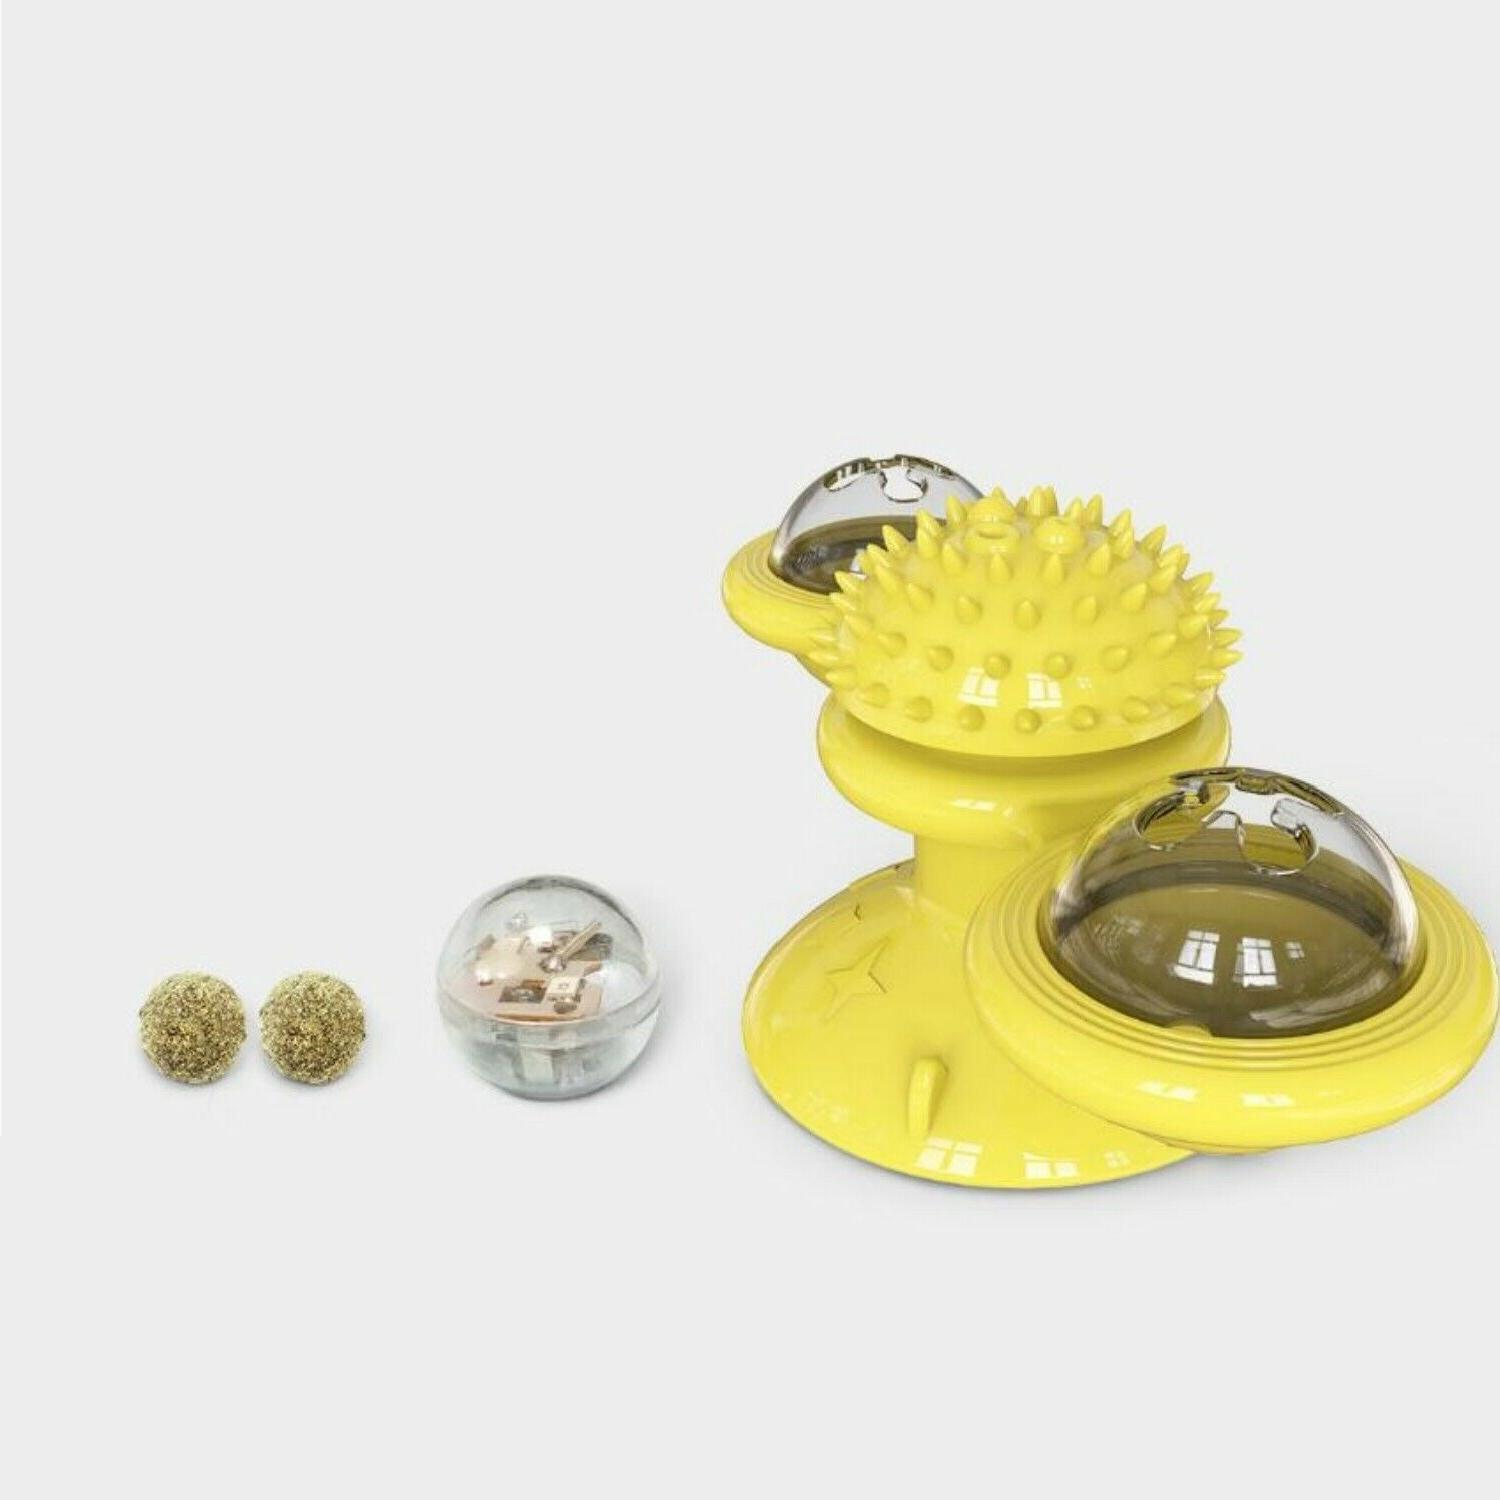 Windmill Cat Fidget Spinner for LED and Catnip - Yellow